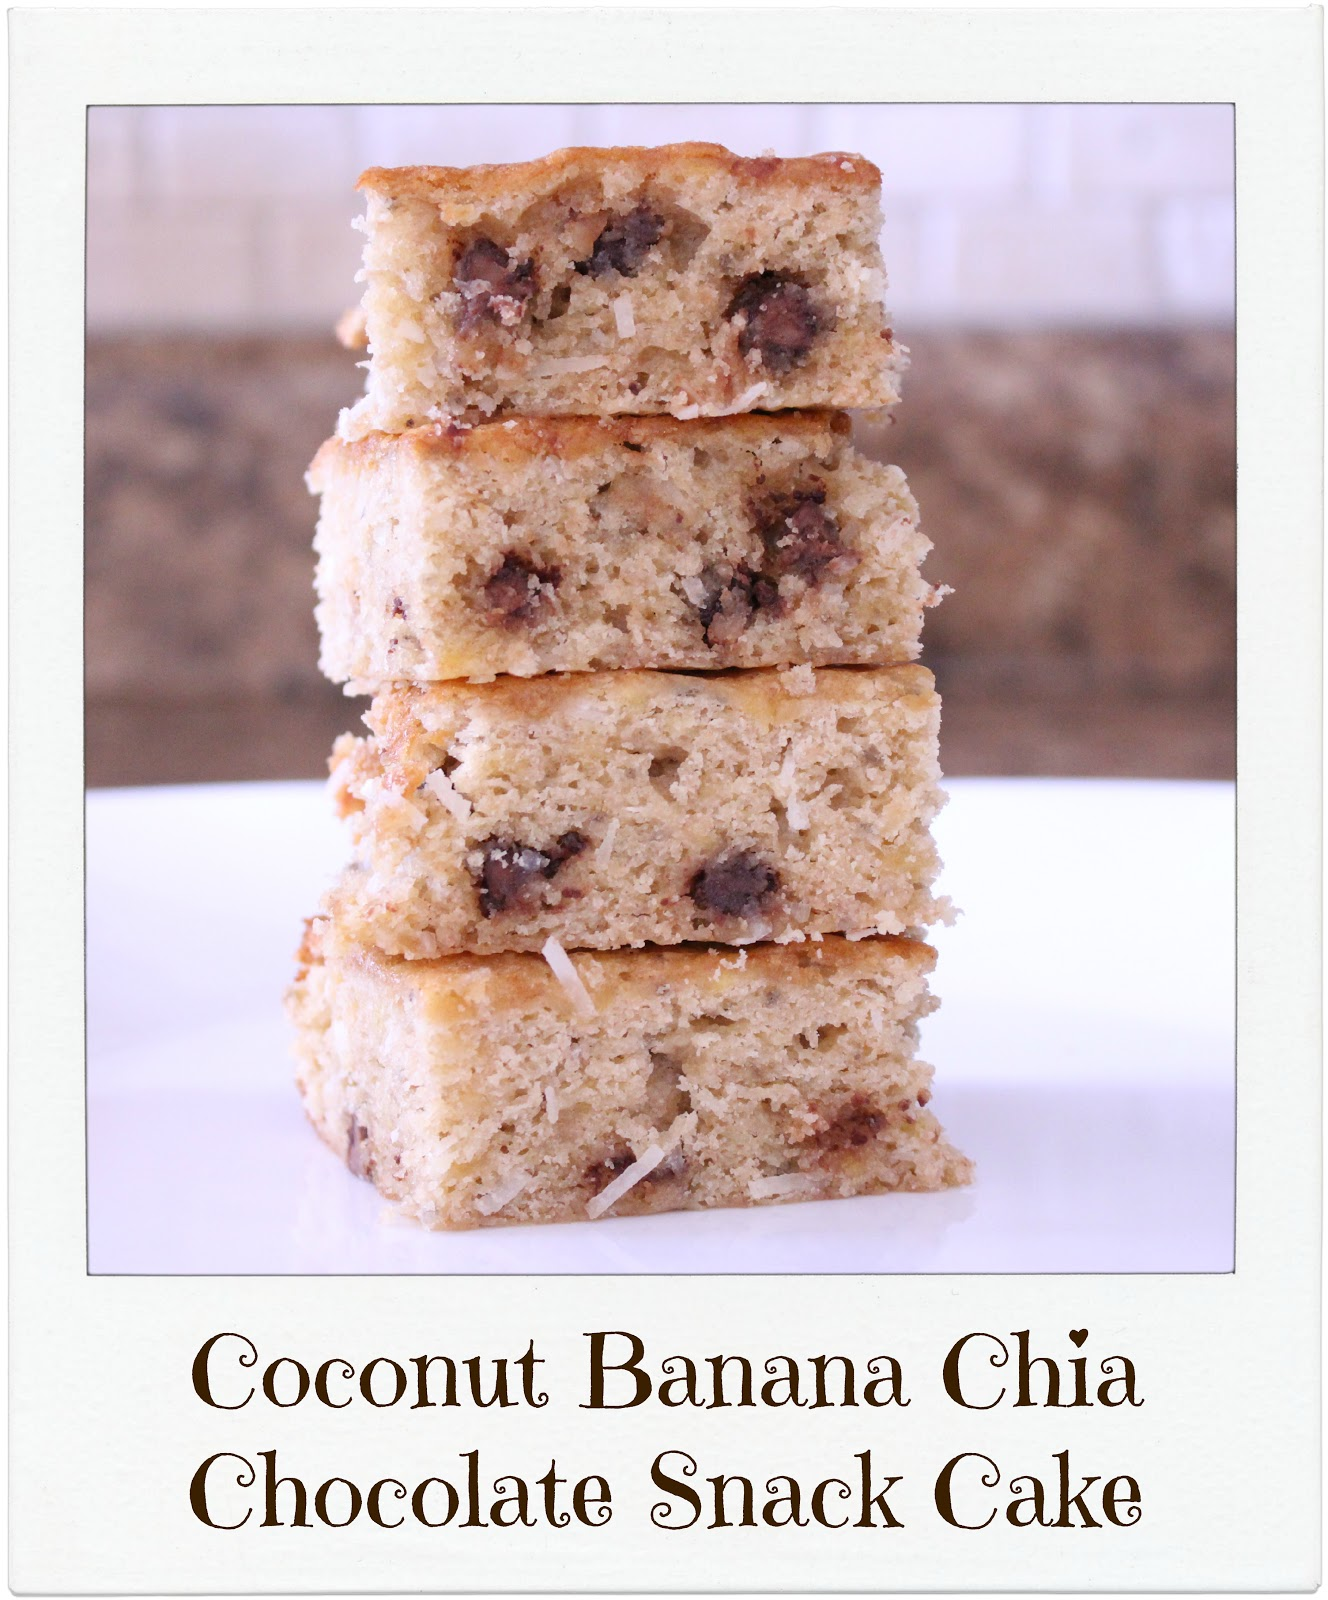 The recipe is up for the Coconut Banana Chia Chocolate Snack Cake